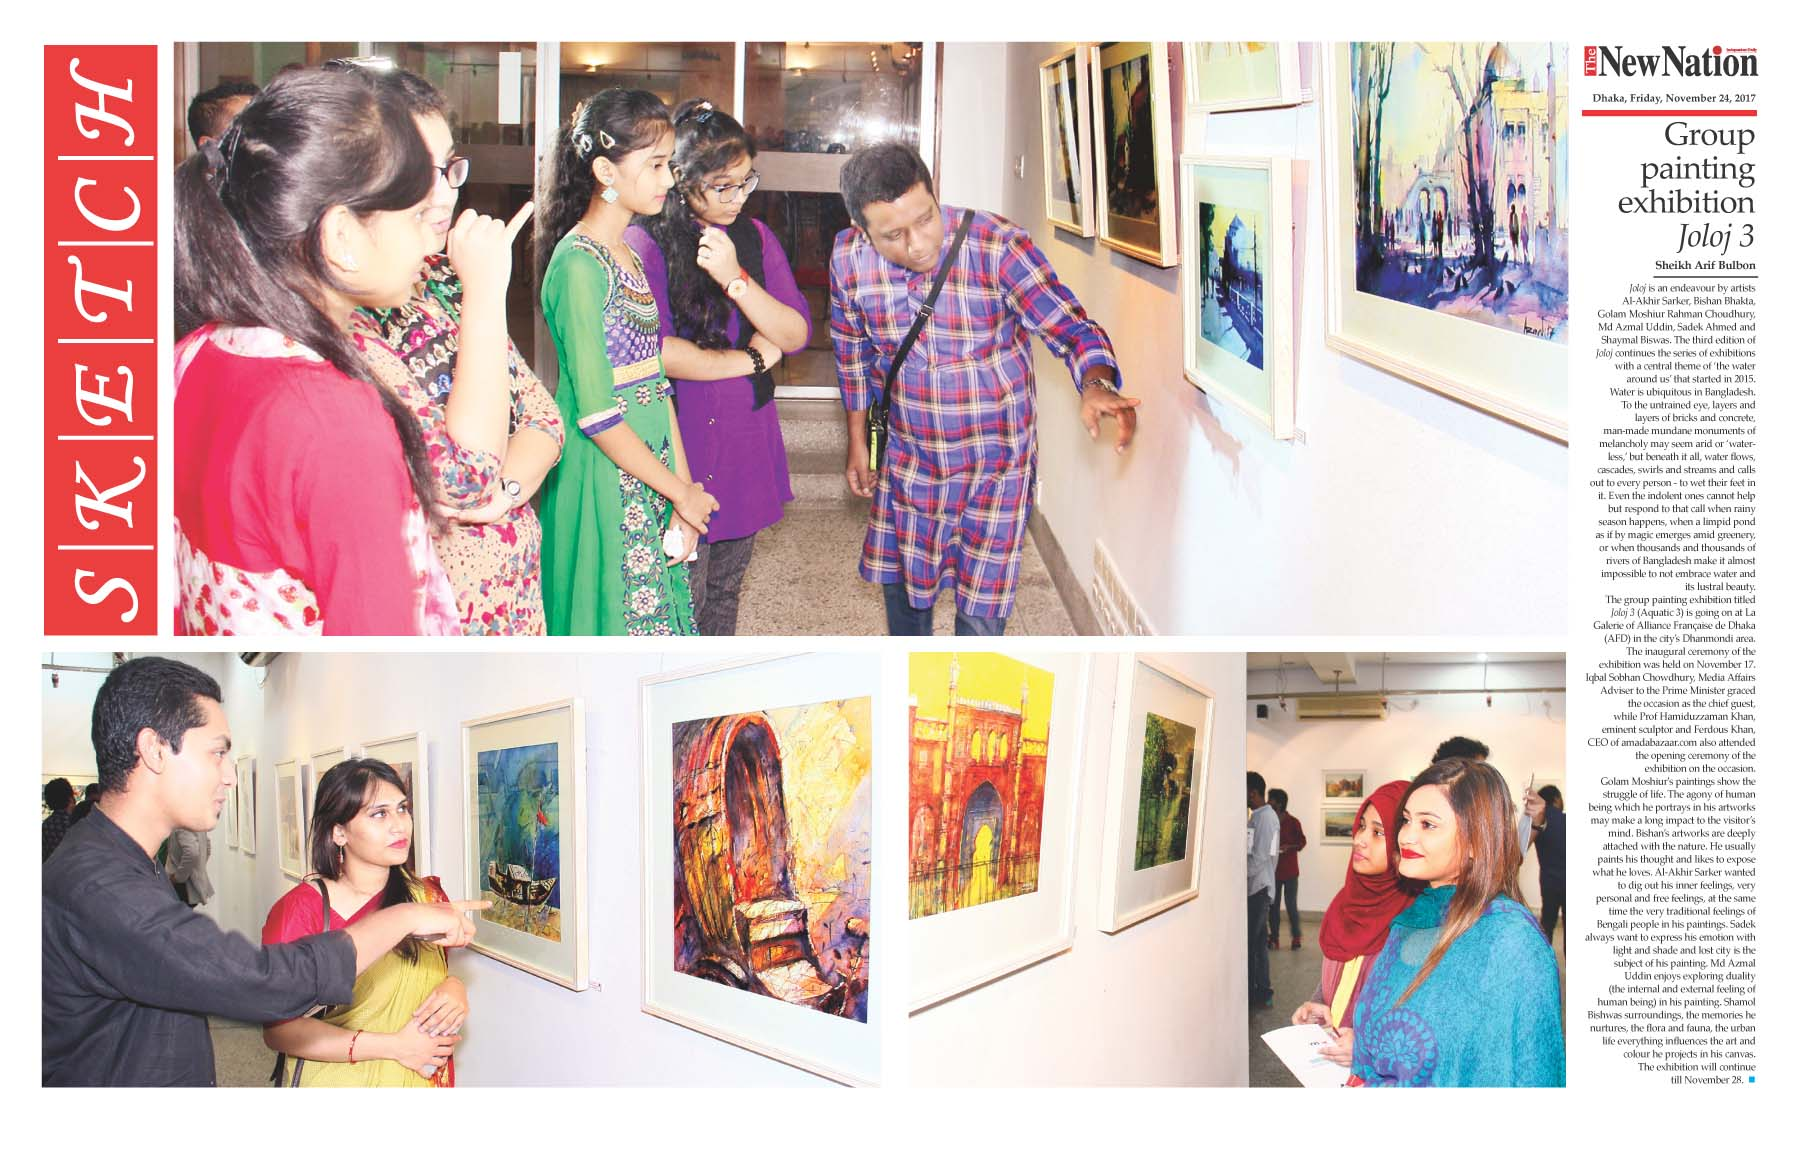 Group painting exhibition Joloj 3